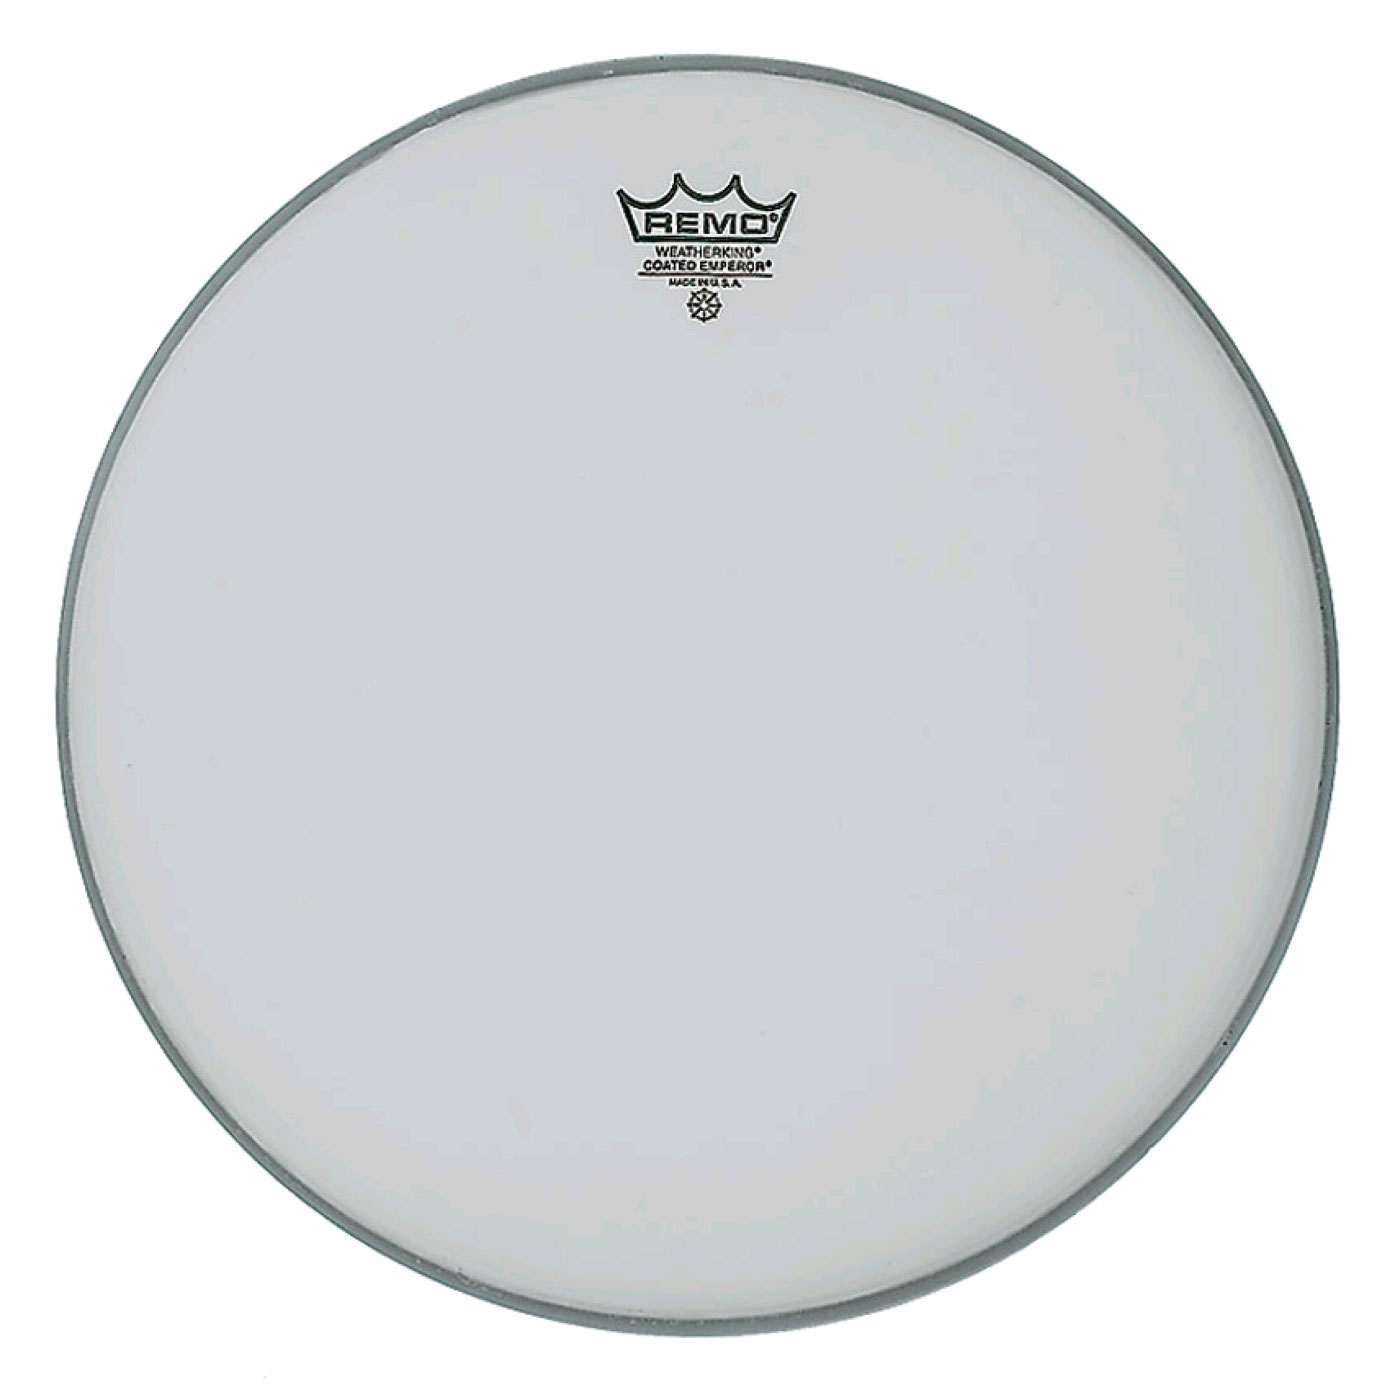 "Remo 18"" Emperor Coated Drum Head"